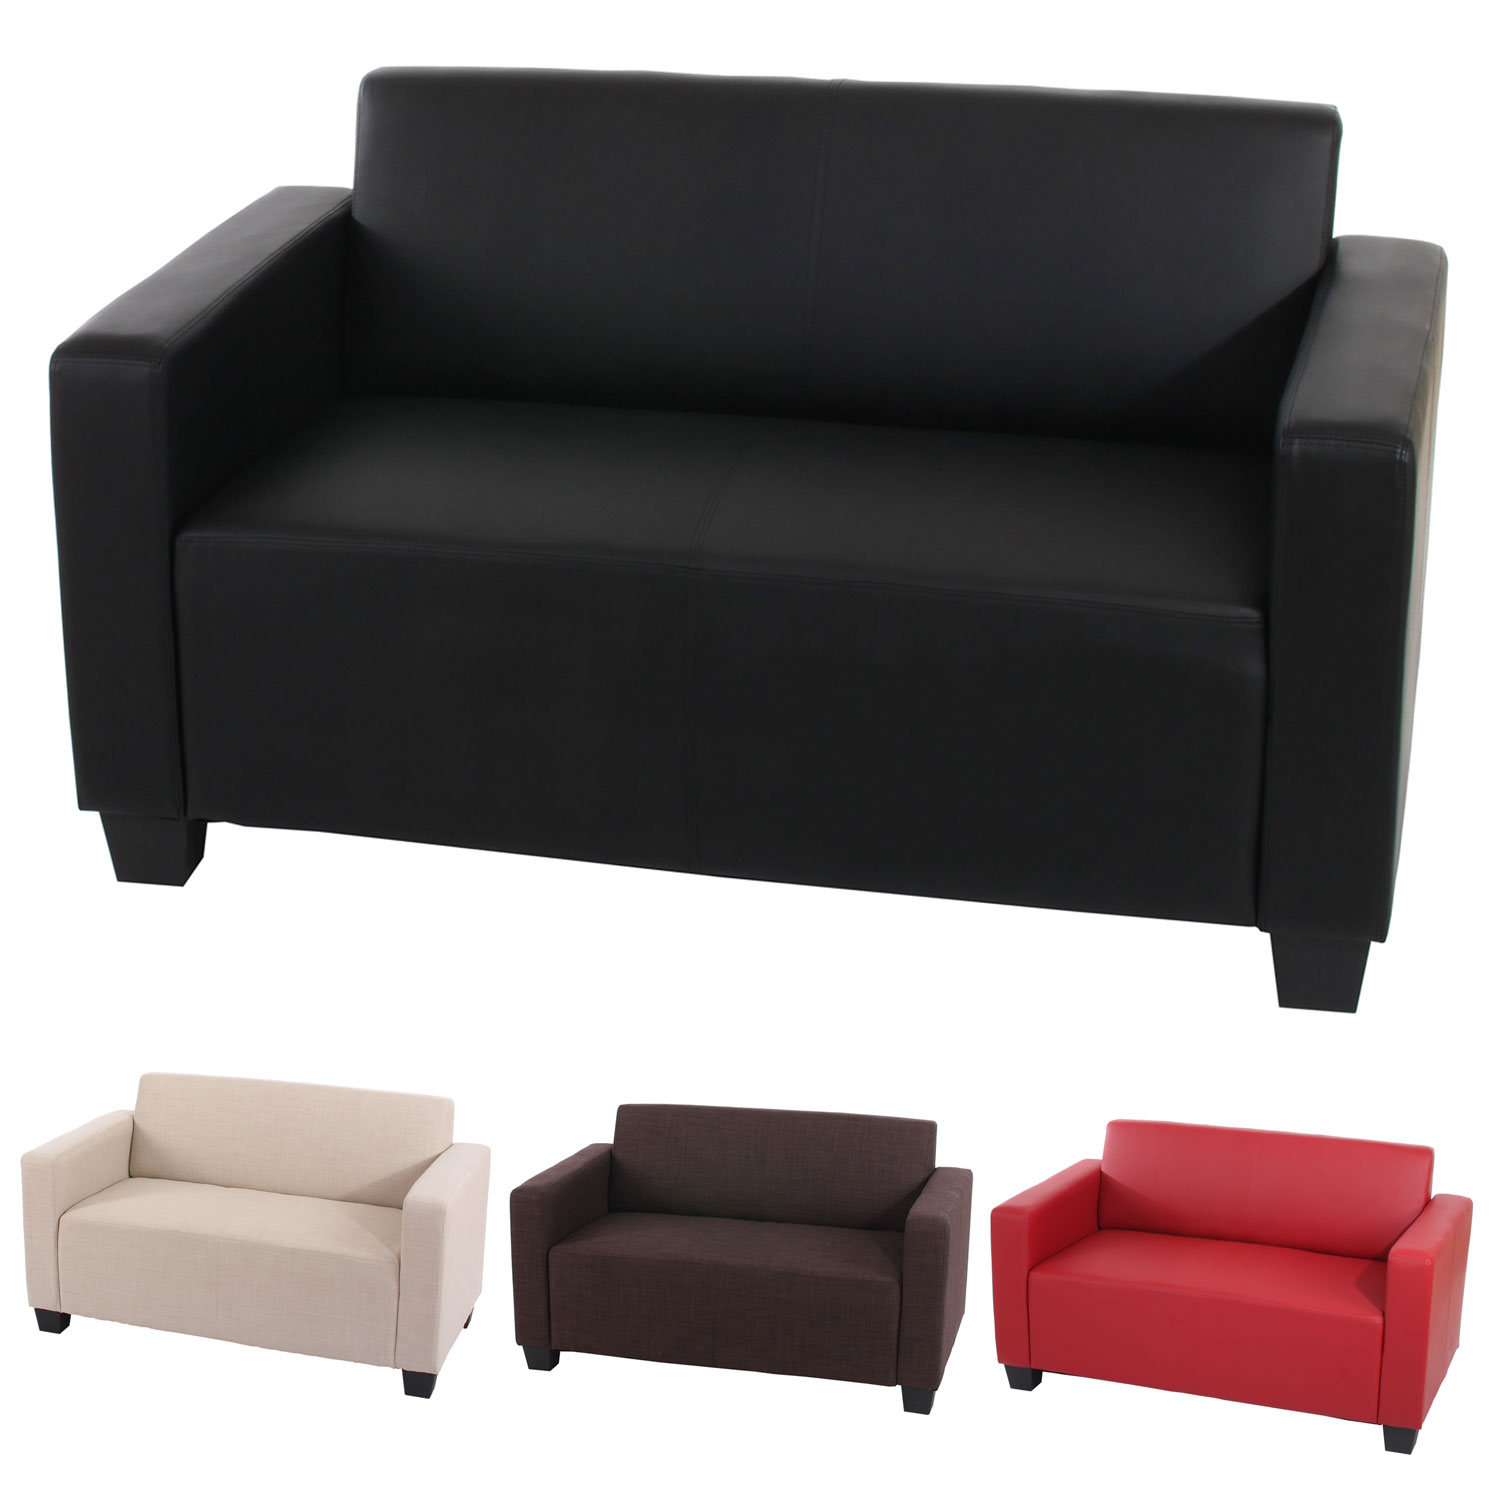 2er sofa couch loungesofa lyon textil kunstleder. Black Bedroom Furniture Sets. Home Design Ideas